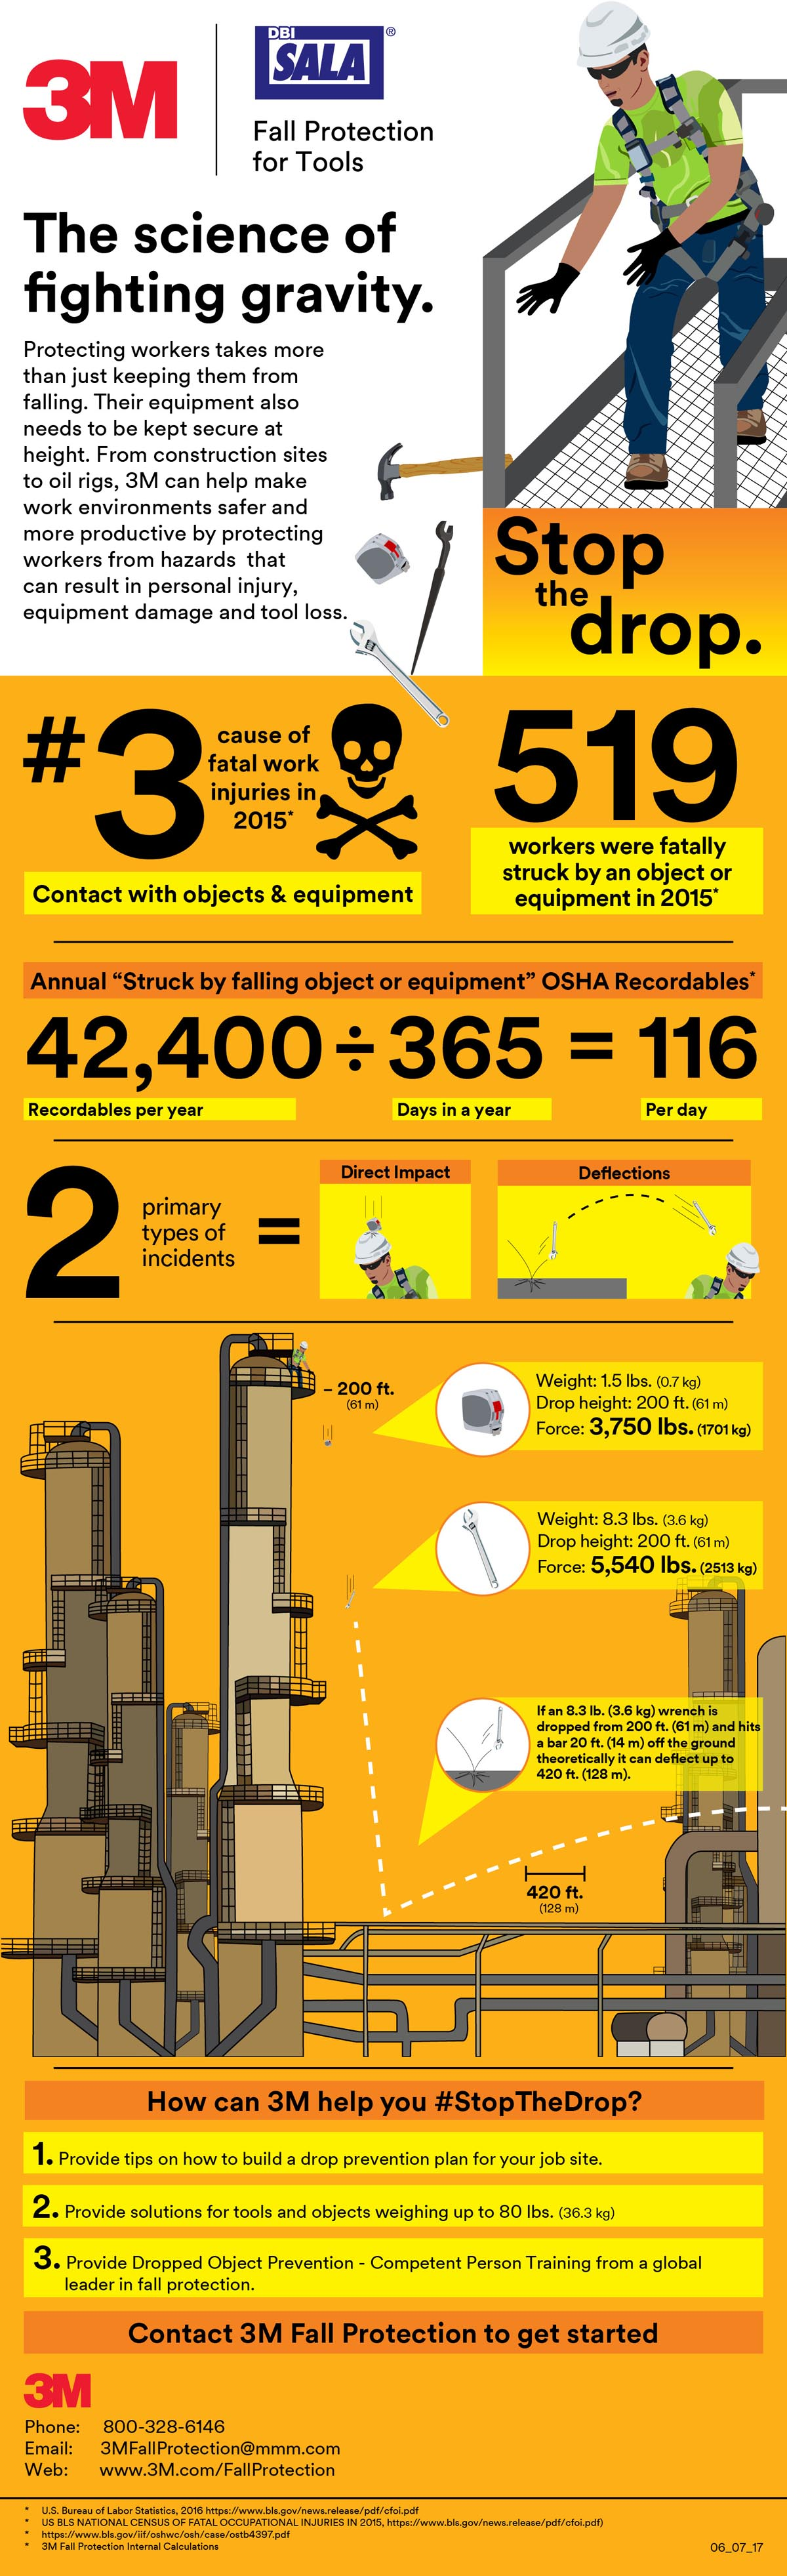 3M Fall Protection For Tools Infographic